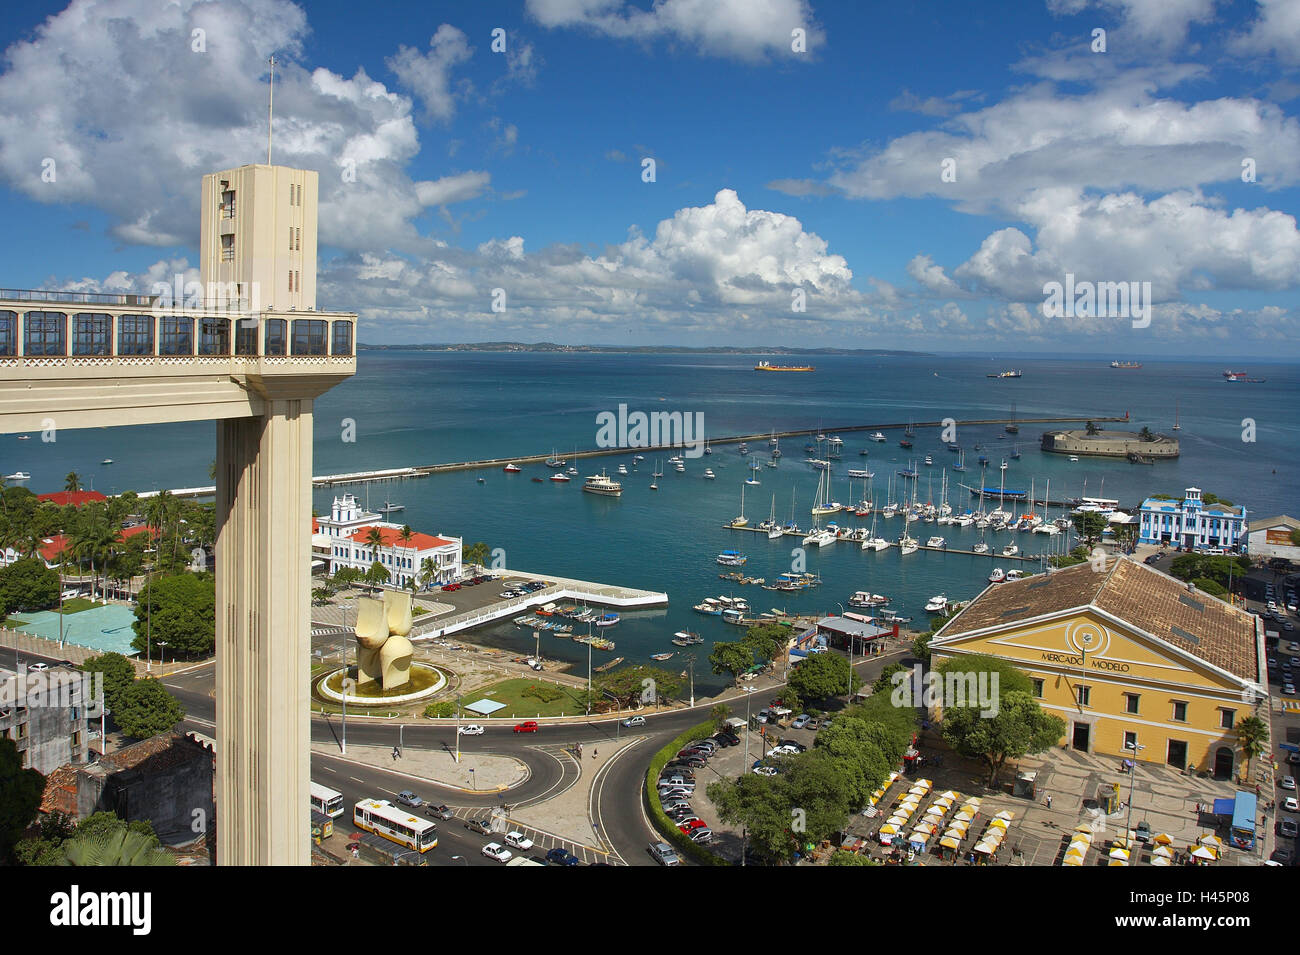 Brazil, Salvador da Bahia, Elevador Lacerda, harbour, sea view Stock Photo  - Alamy